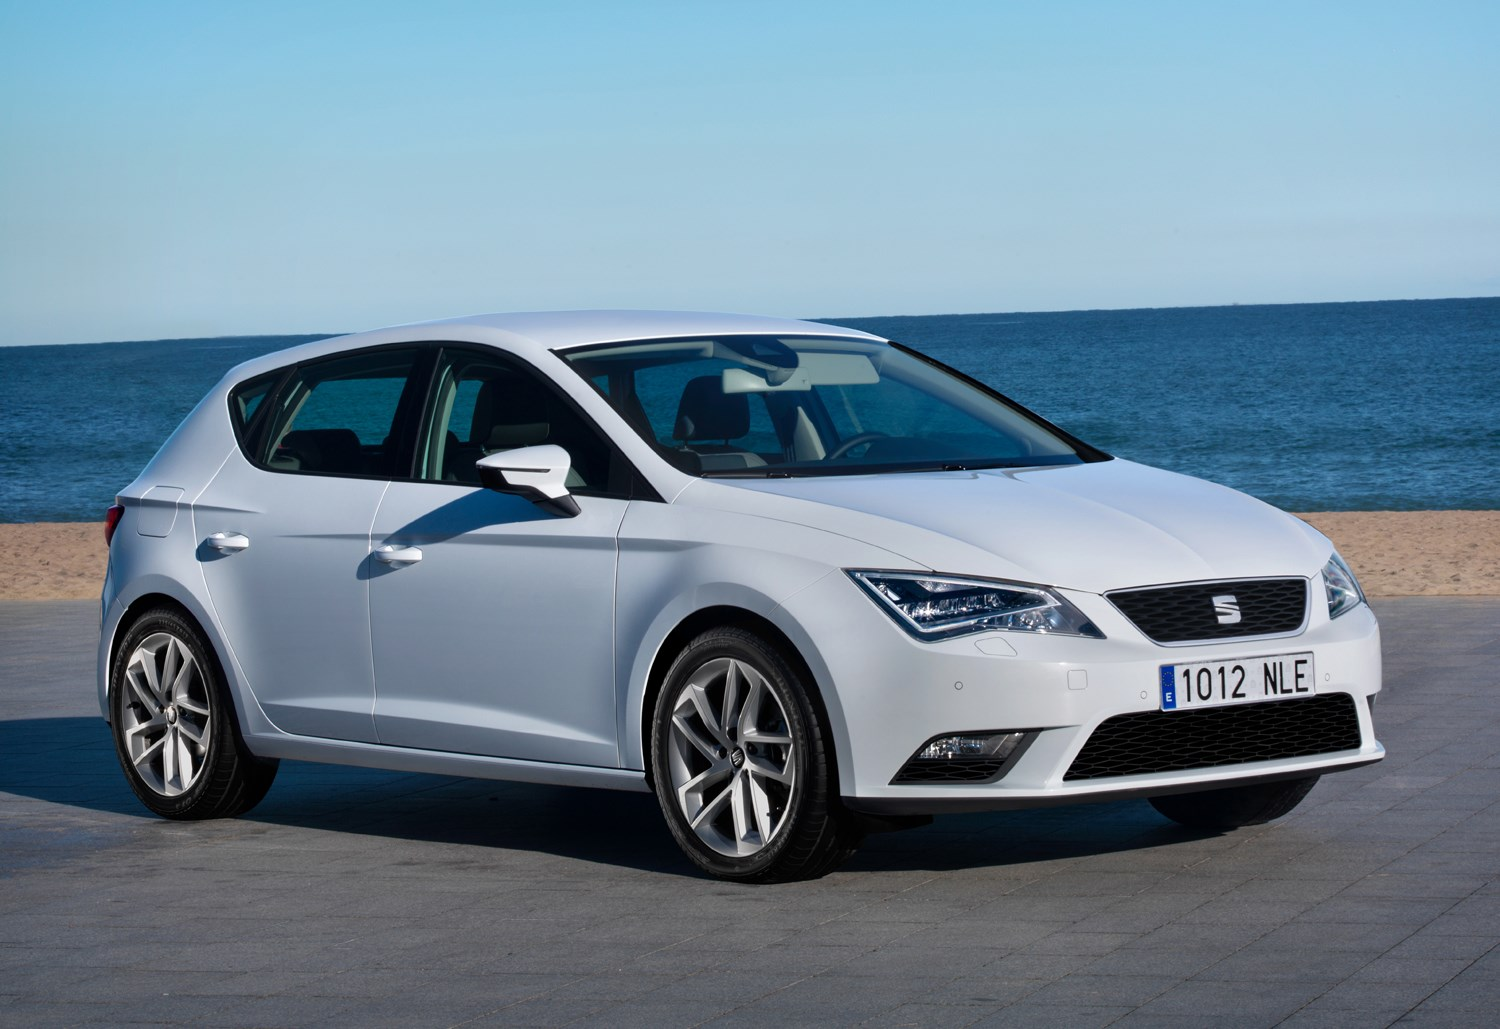 seat leon hatchback review parkers. Black Bedroom Furniture Sets. Home Design Ideas